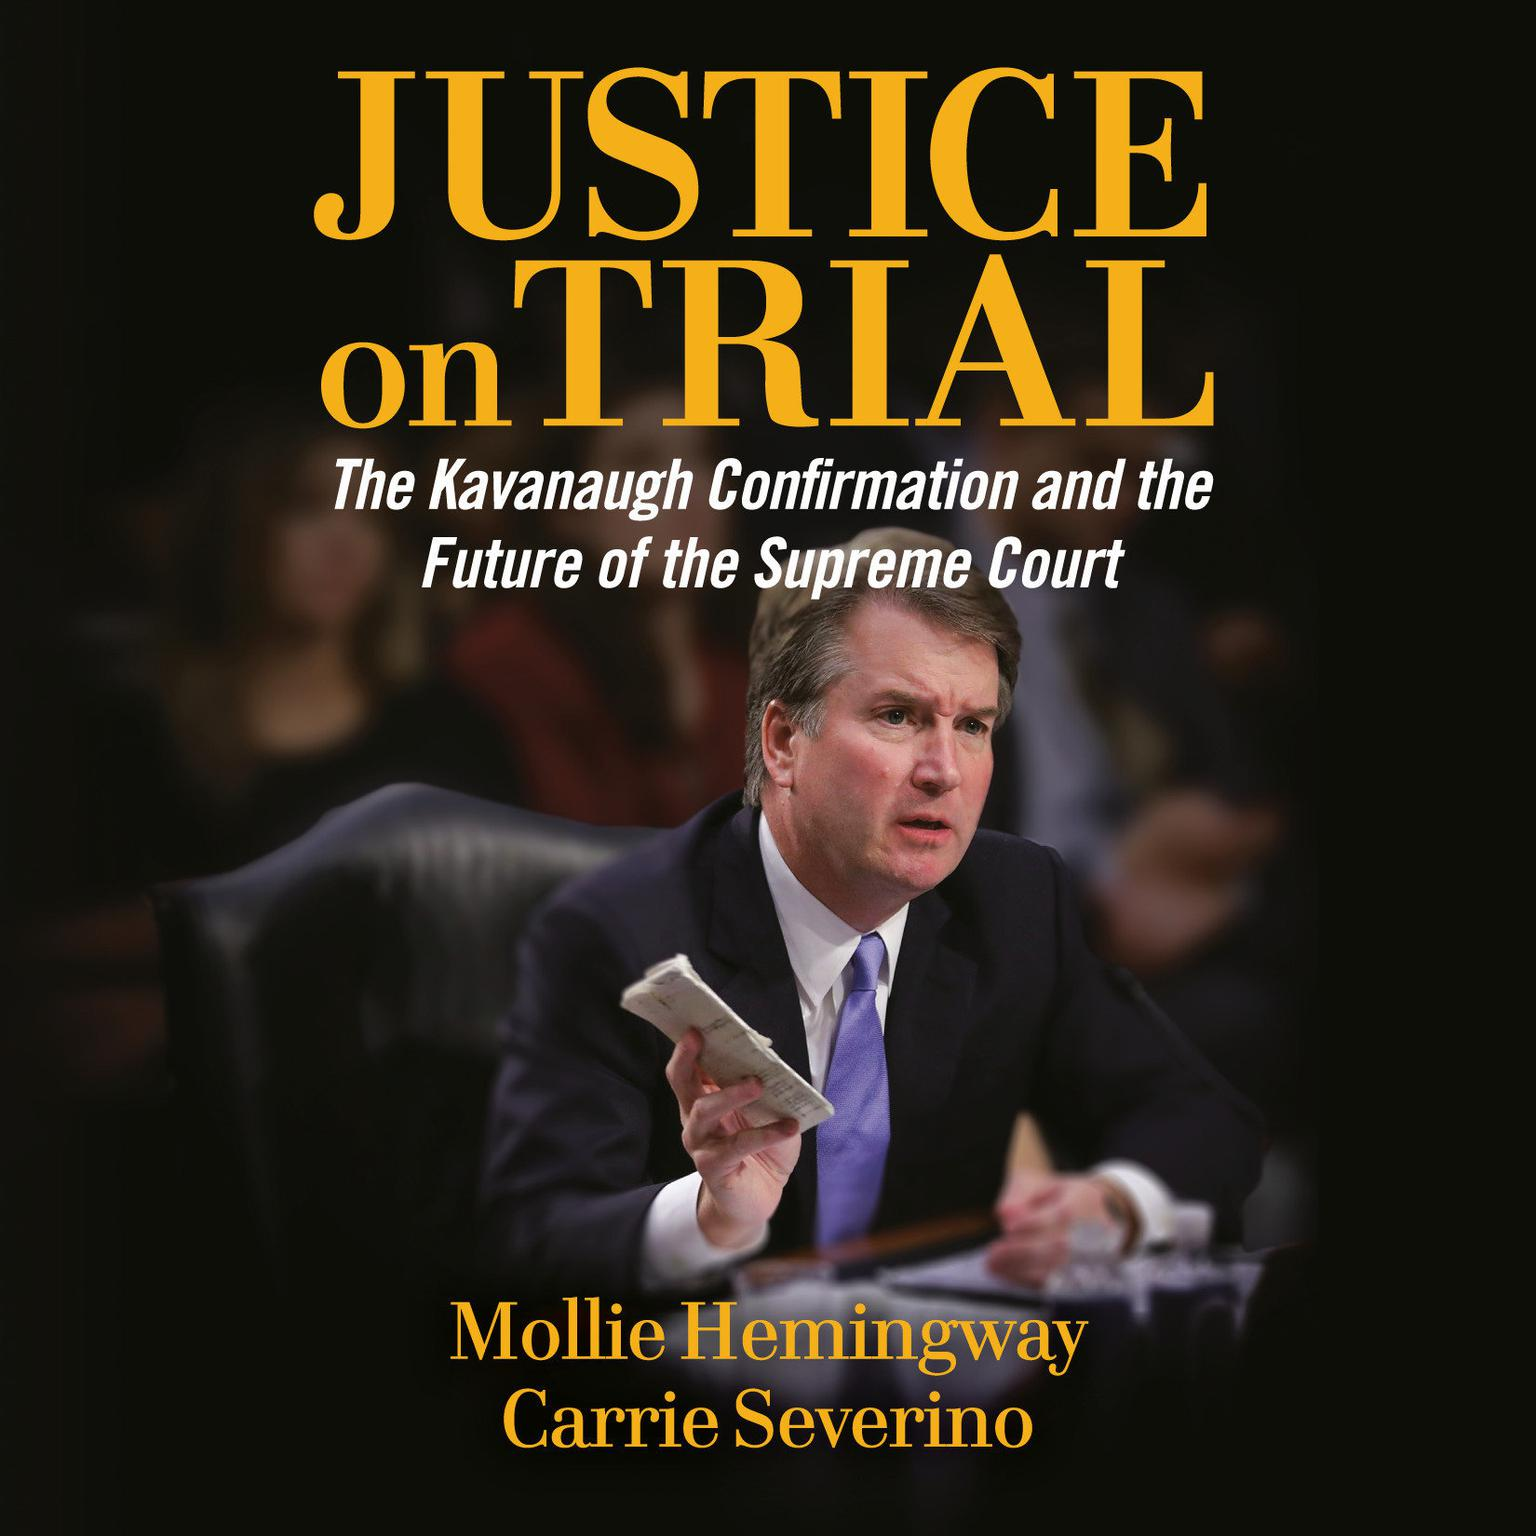 Printable Justice on Trial: The Kavanaugh Confirmation and the Future of the Supreme Court Audiobook Cover Art